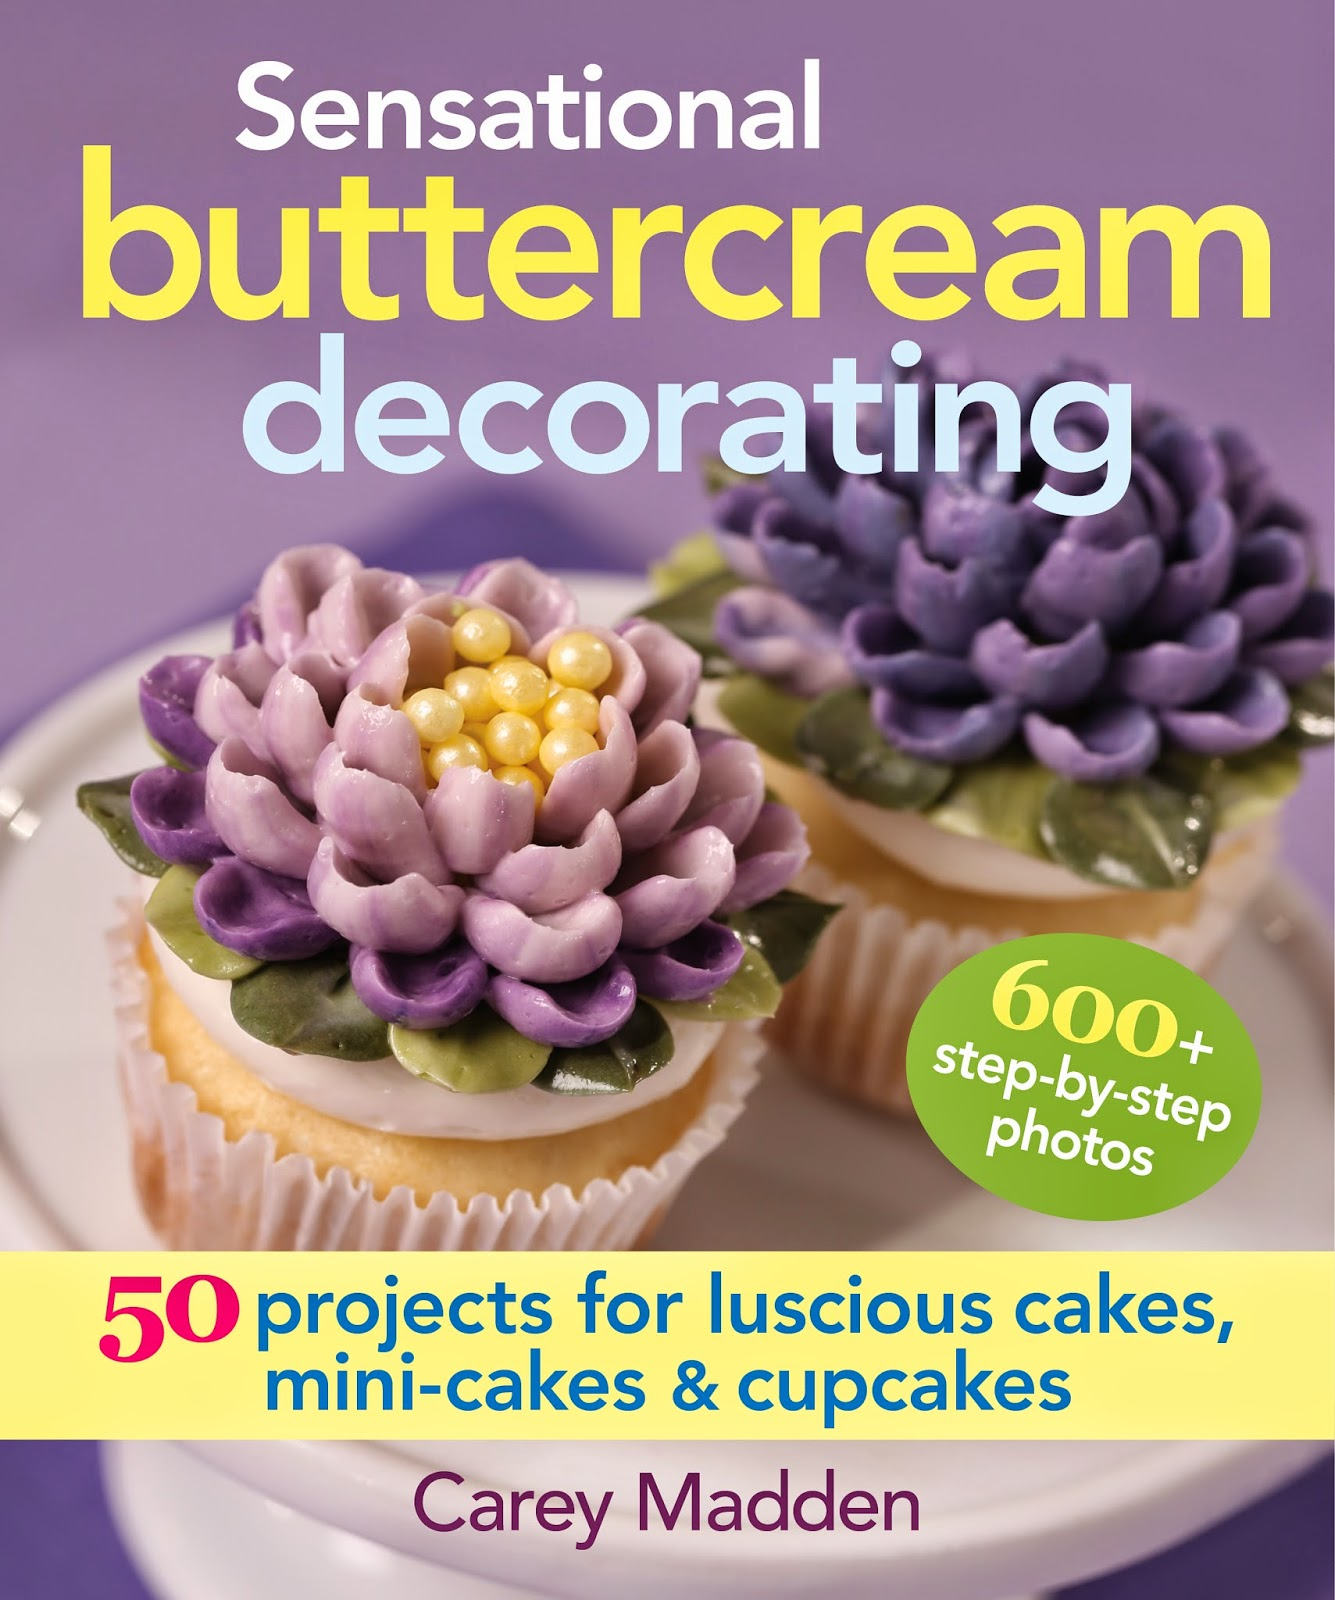 sensational buttercream decorating:50 projects for luscious cakes,mini-cakes and cupcakes by carey madden